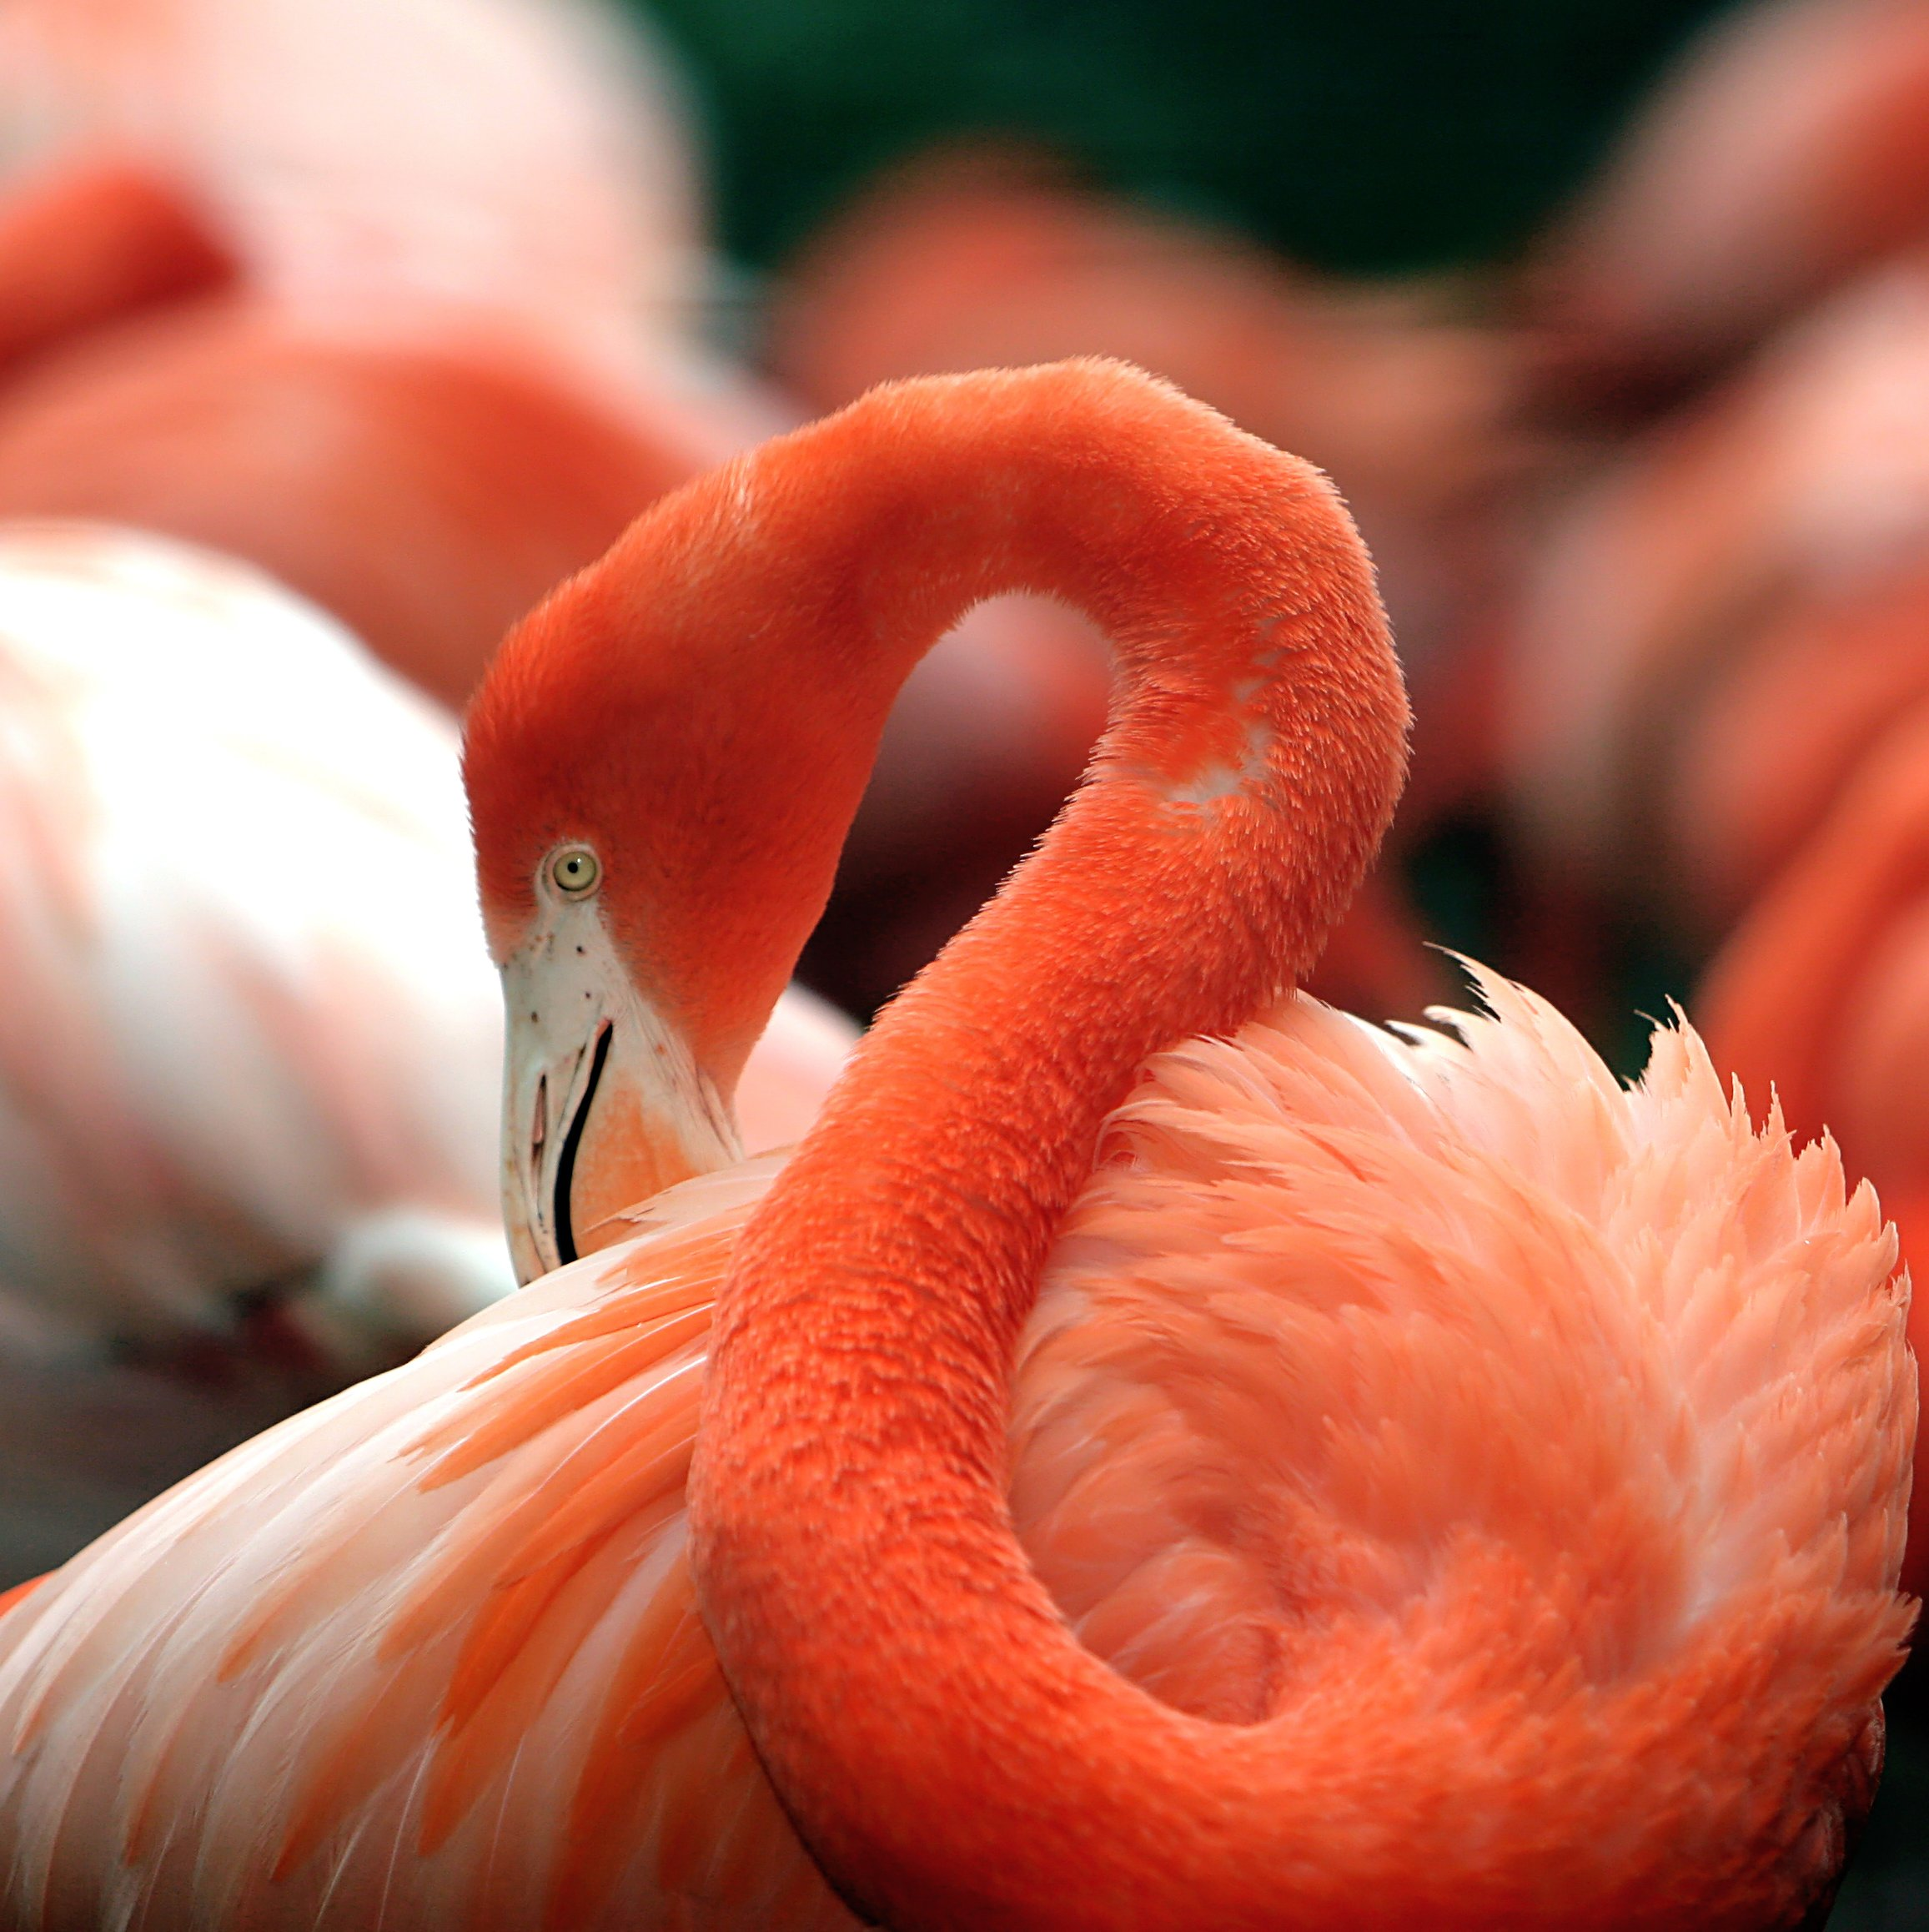 http://upload.wikimedia.org/wikipedia/commons/7/79/Flamingo_National_Zoo.jpg